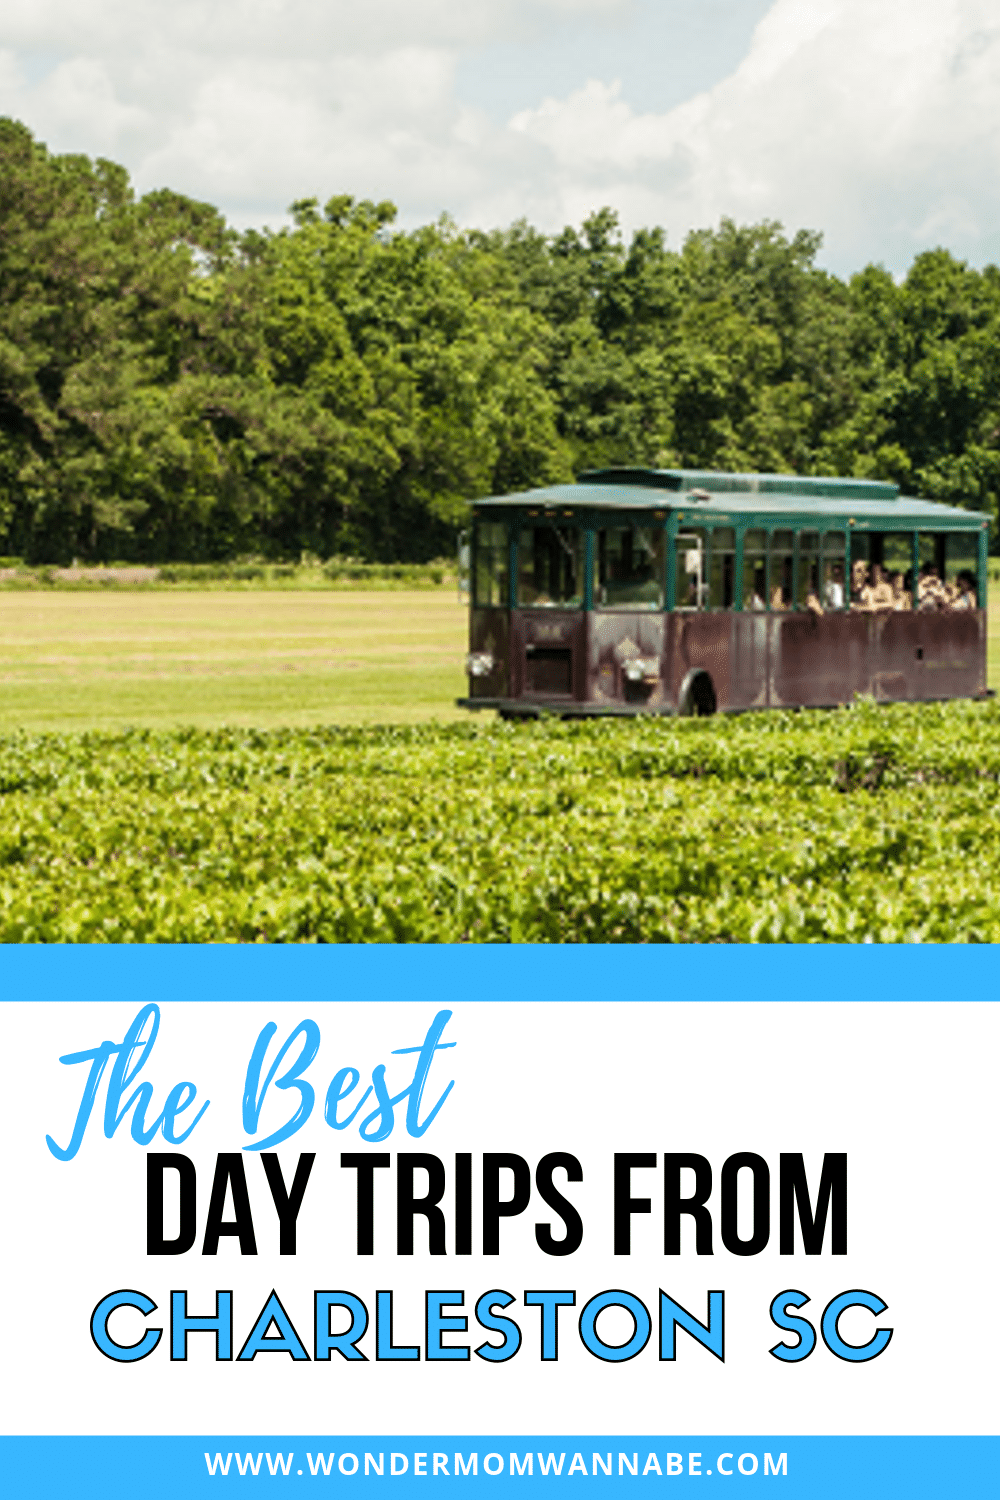 A trolley travelling through a green field with trees in the background with title text reading The Best Day Trips from Charleston SC